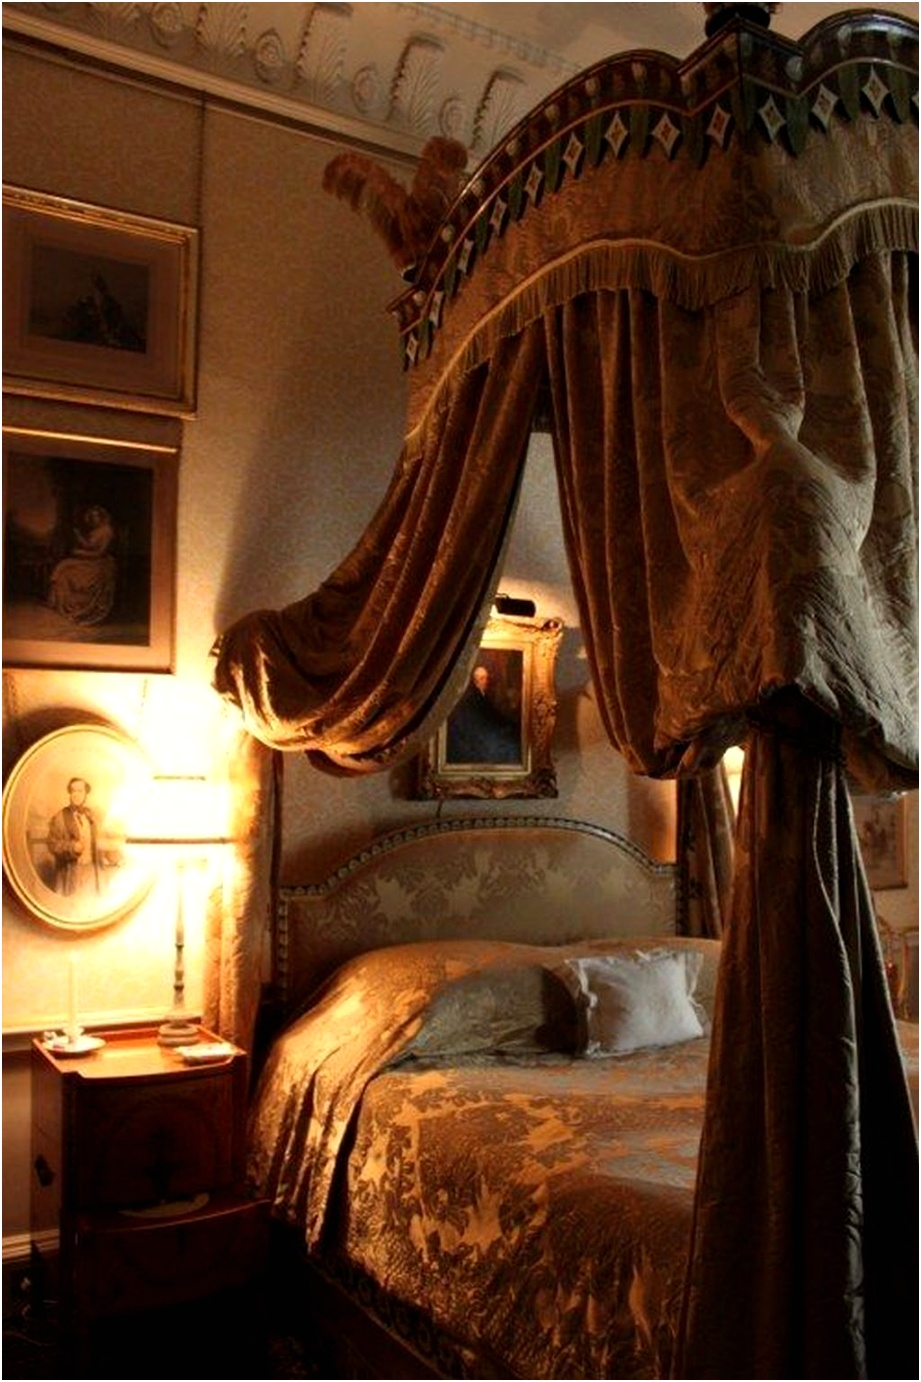 tuscan style bedroom decorative ideas that make your sleep warm04